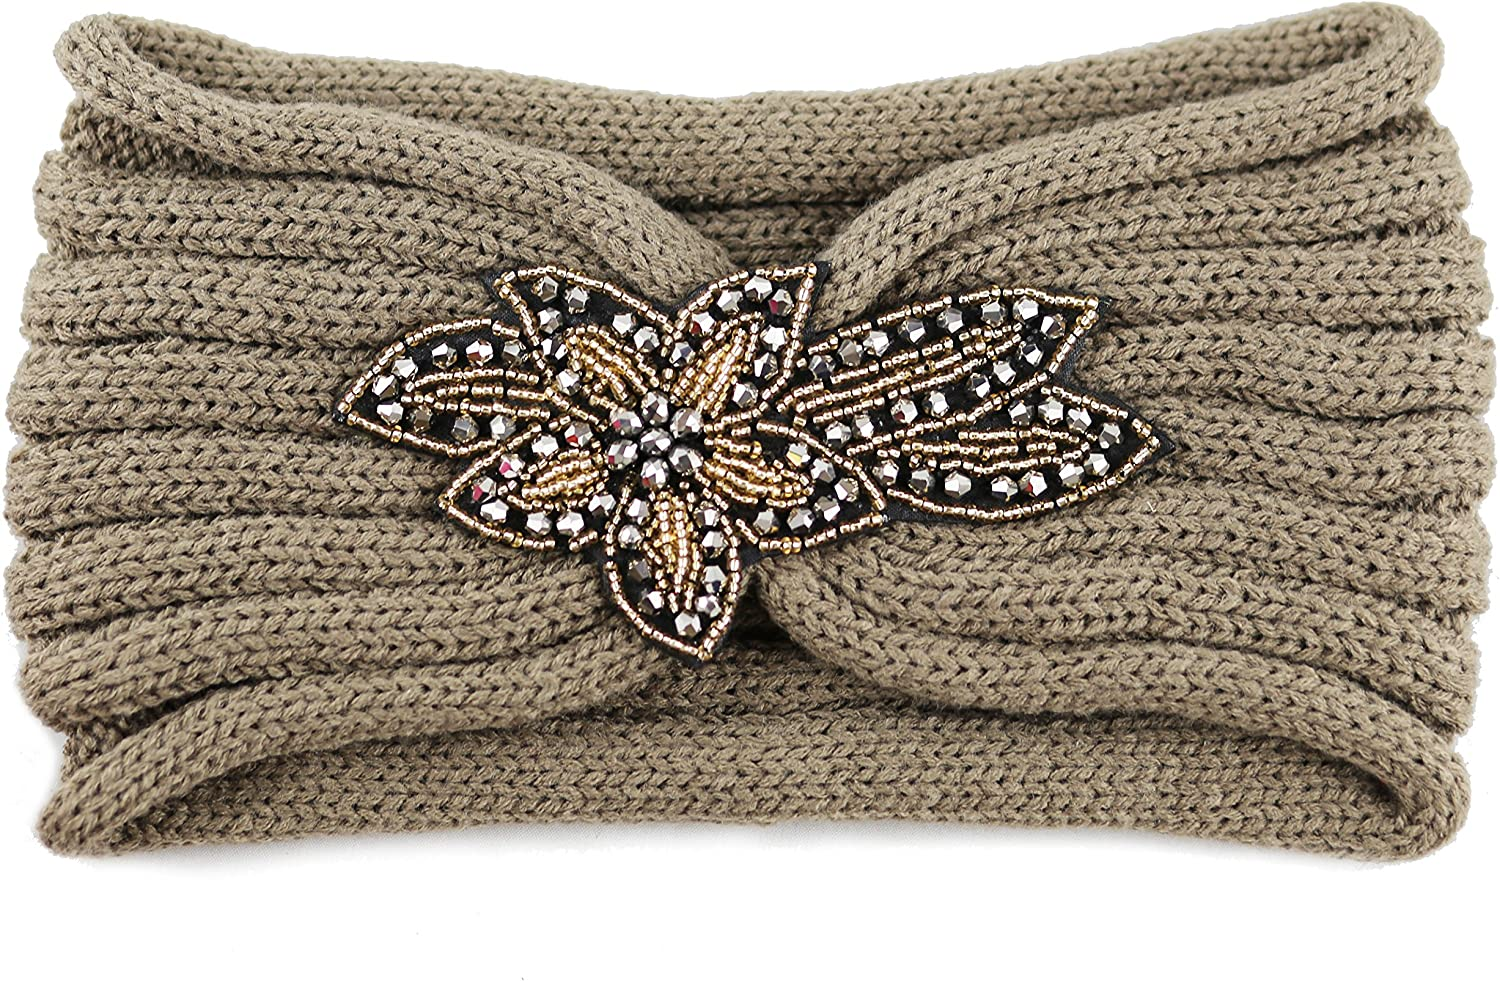 The Hat Depot 700HB-80 Sequin Knit Headband with Flower Decoration